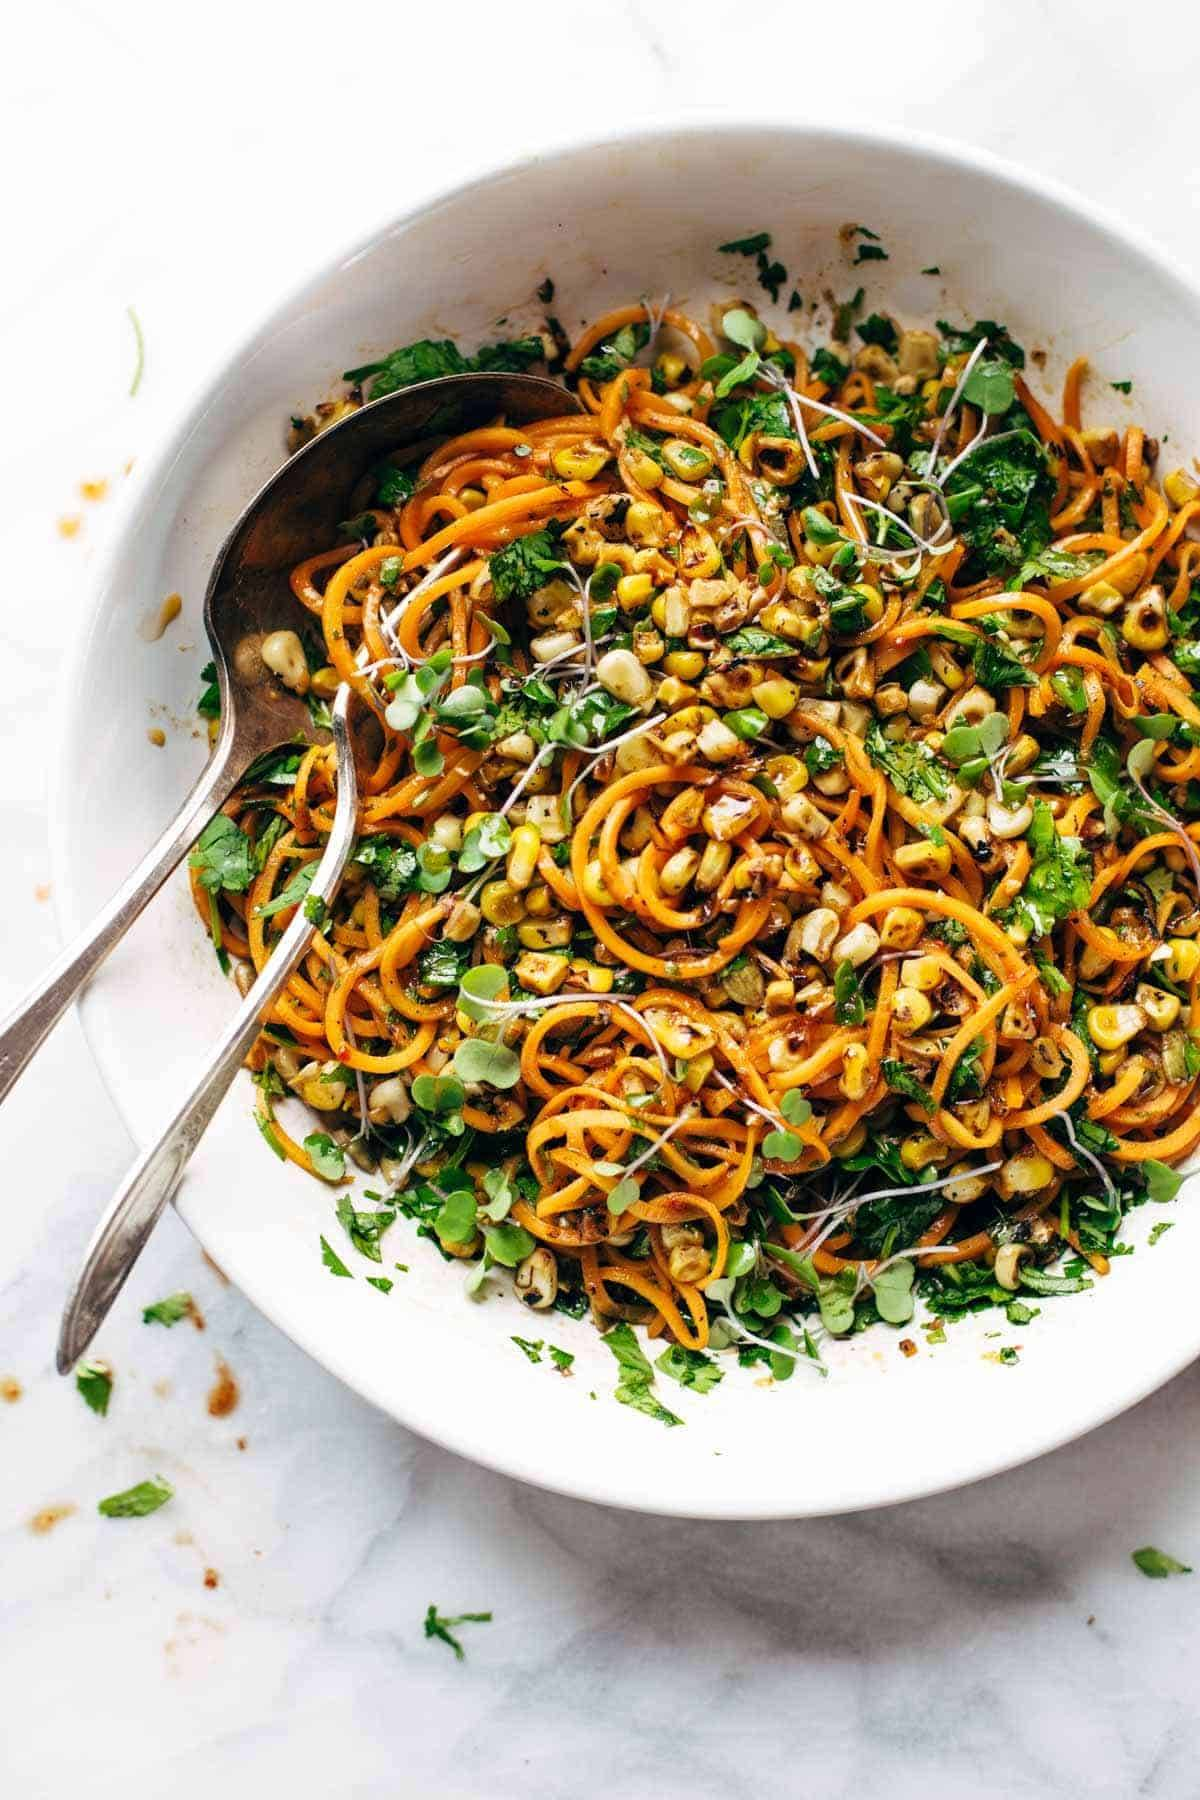 Chipotle Sweet Potato Noodle Salad with Roasted Corn - SUPER good real food salad with a short ingredient list! Cilantro, sweet potato, roasted corn, pepitas, and a homemade chipotle garlic dressing. vegan / vegetarian. | pinchofyum.com